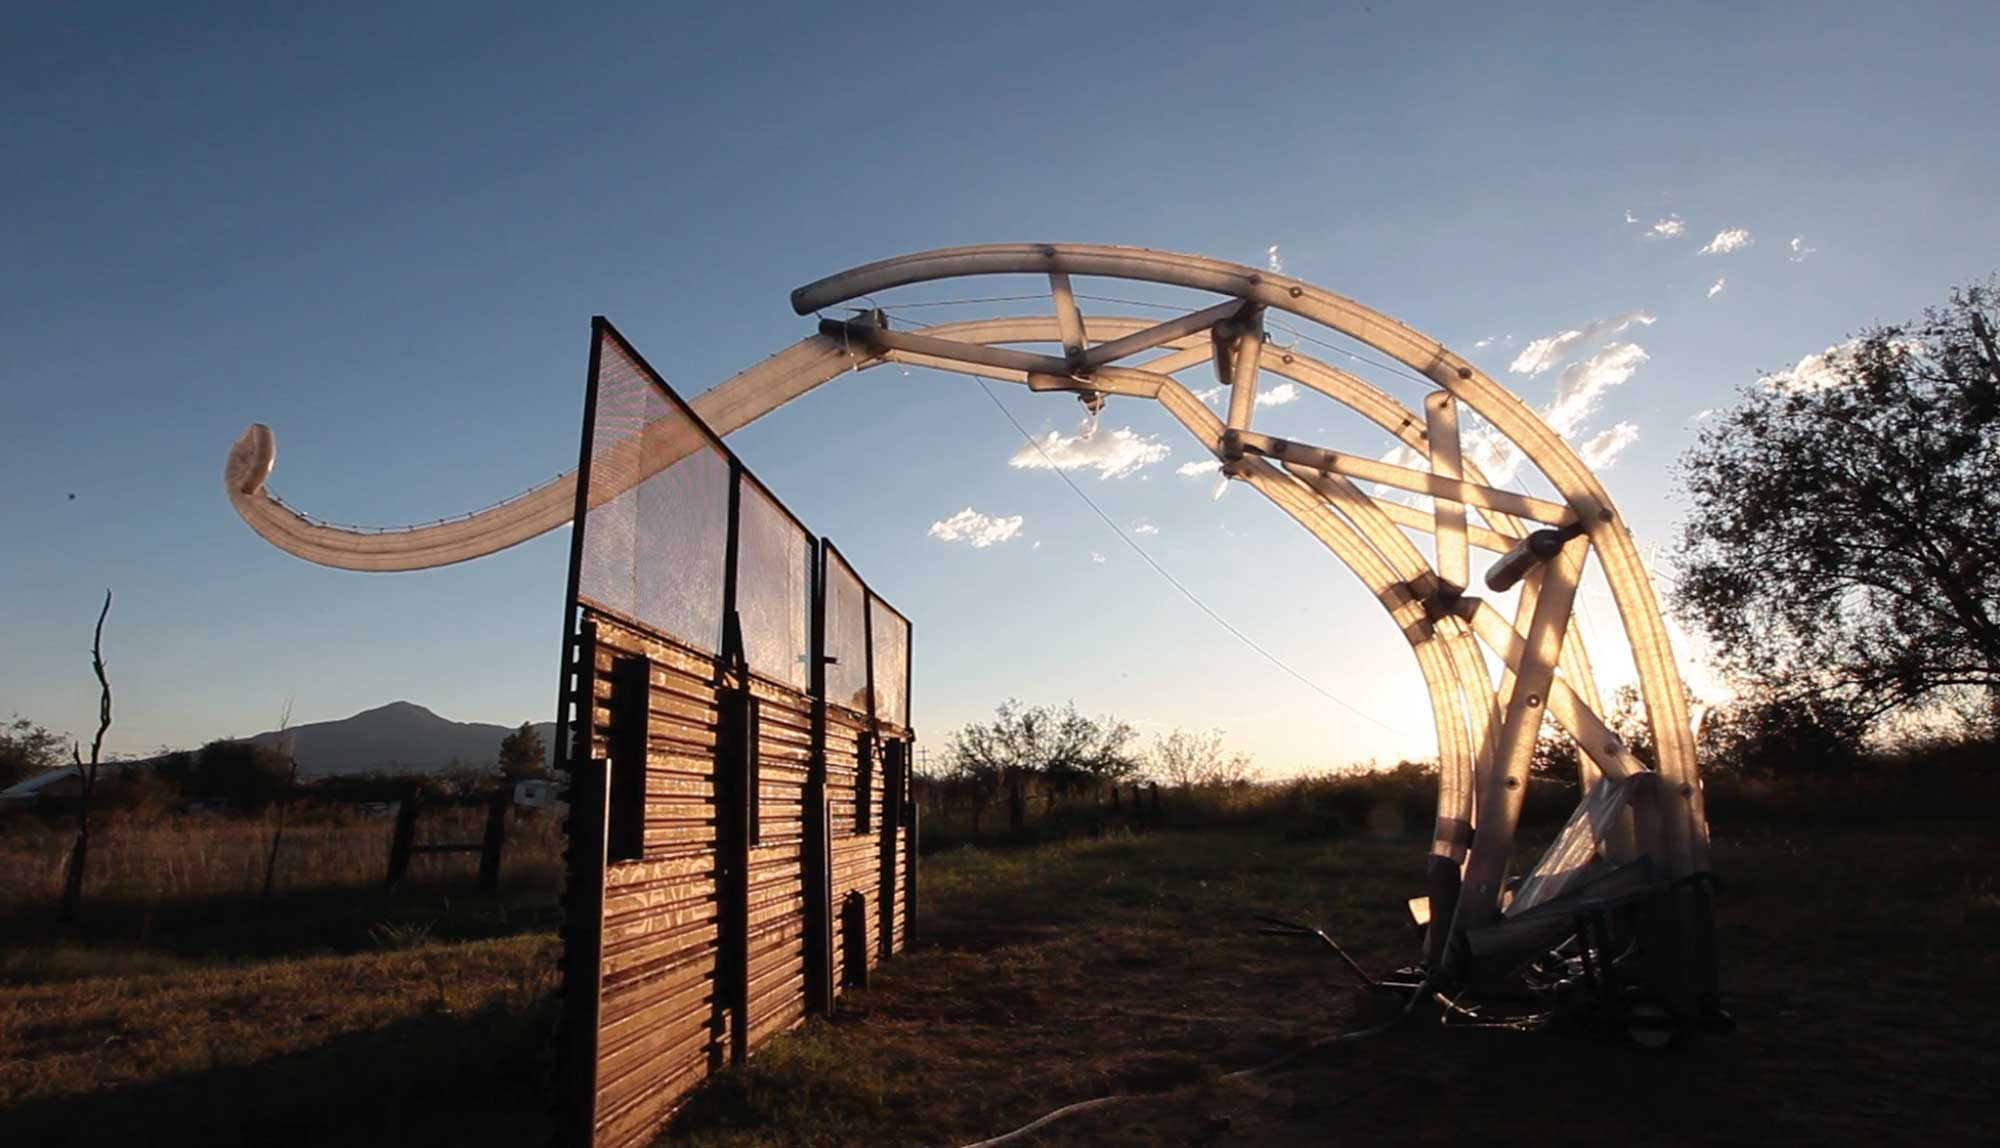 """In 2017, the first """"Border Crosser """" robot was built and tested at the  Amorphic Ranch in Bisbee, Arizona. © MacMurtrie/ARW Image credit: Bobby N. Adams"""